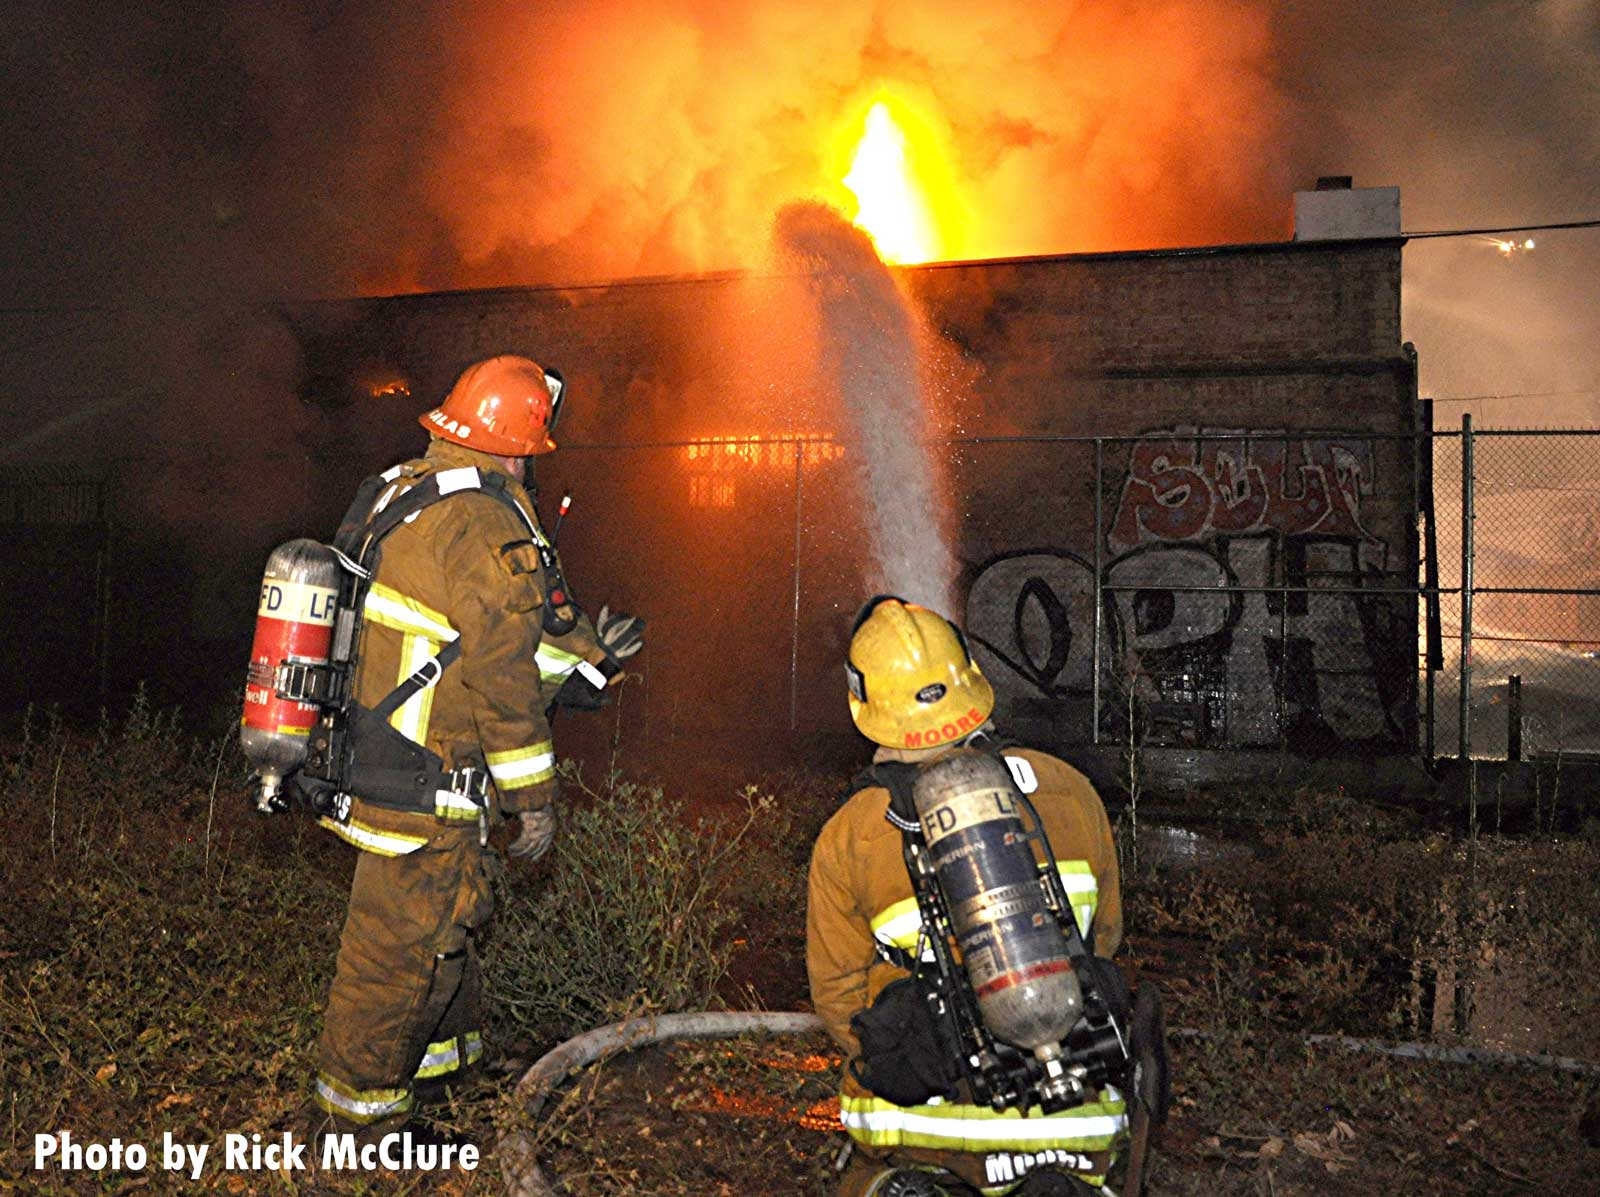 Firefighters with a hoseline putting water on flames